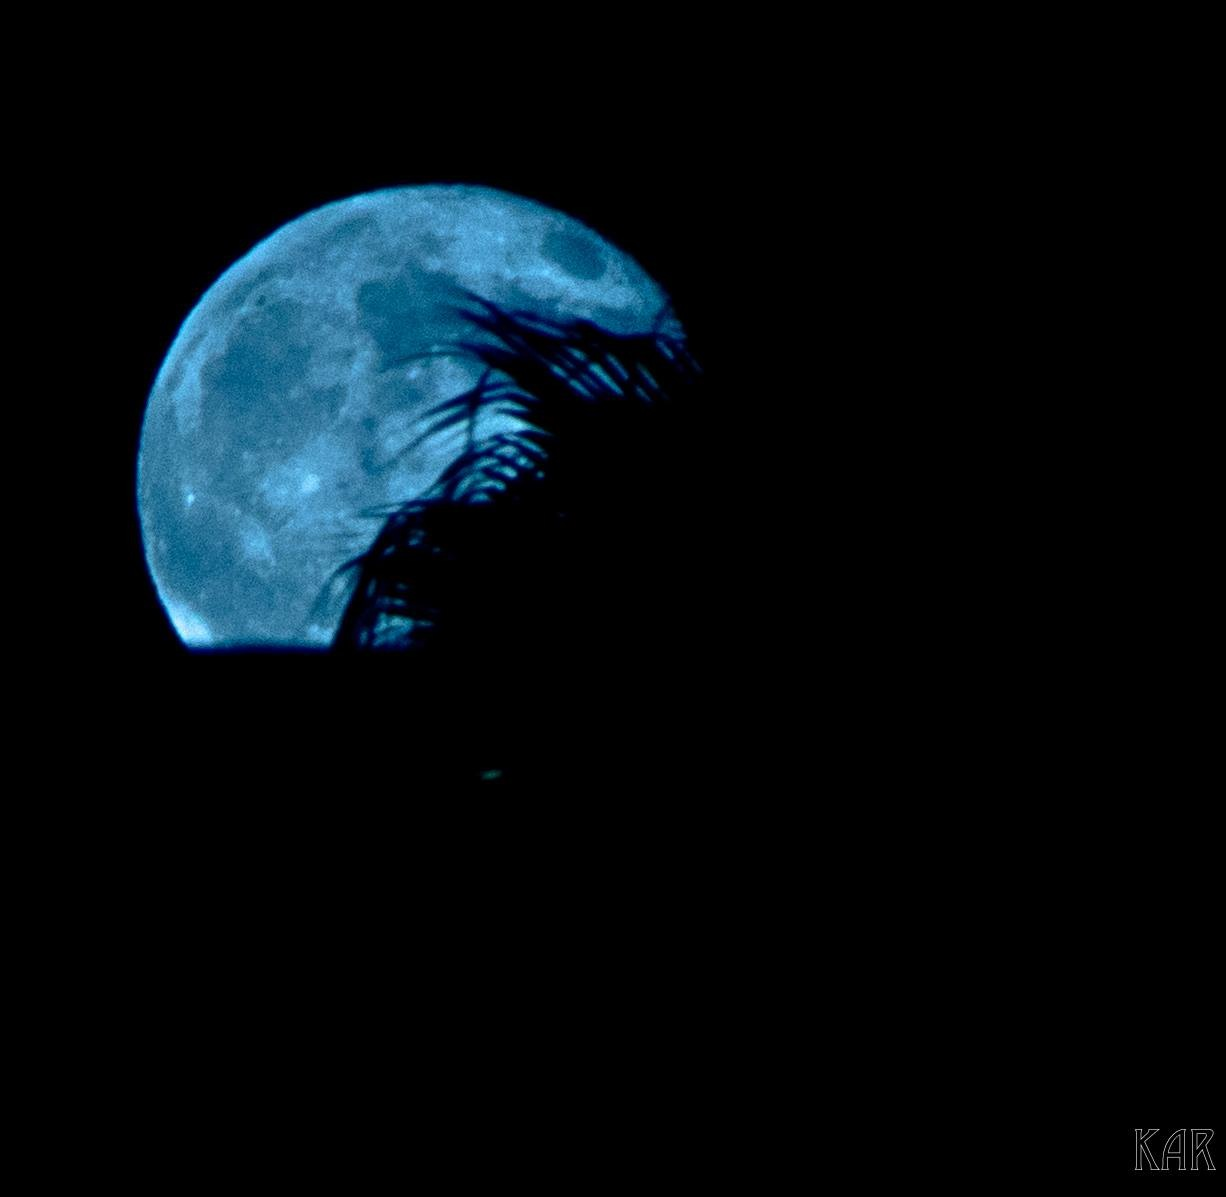 Supermoon of July 12, 2014: By Kelly Rich